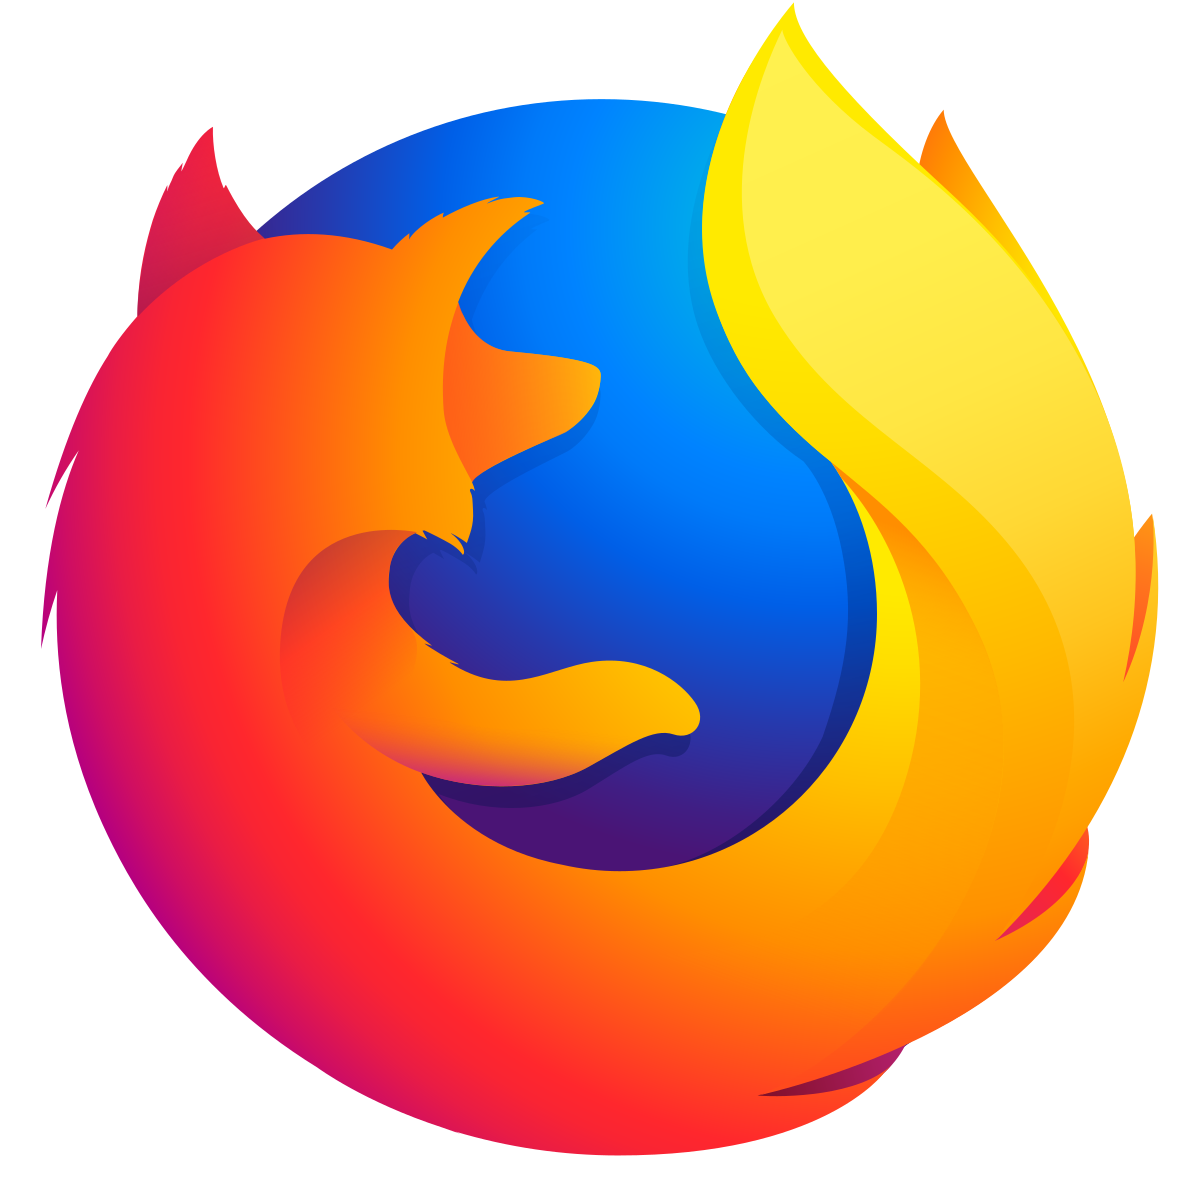 Firefox wikipedia . Internet clipart internet browsing